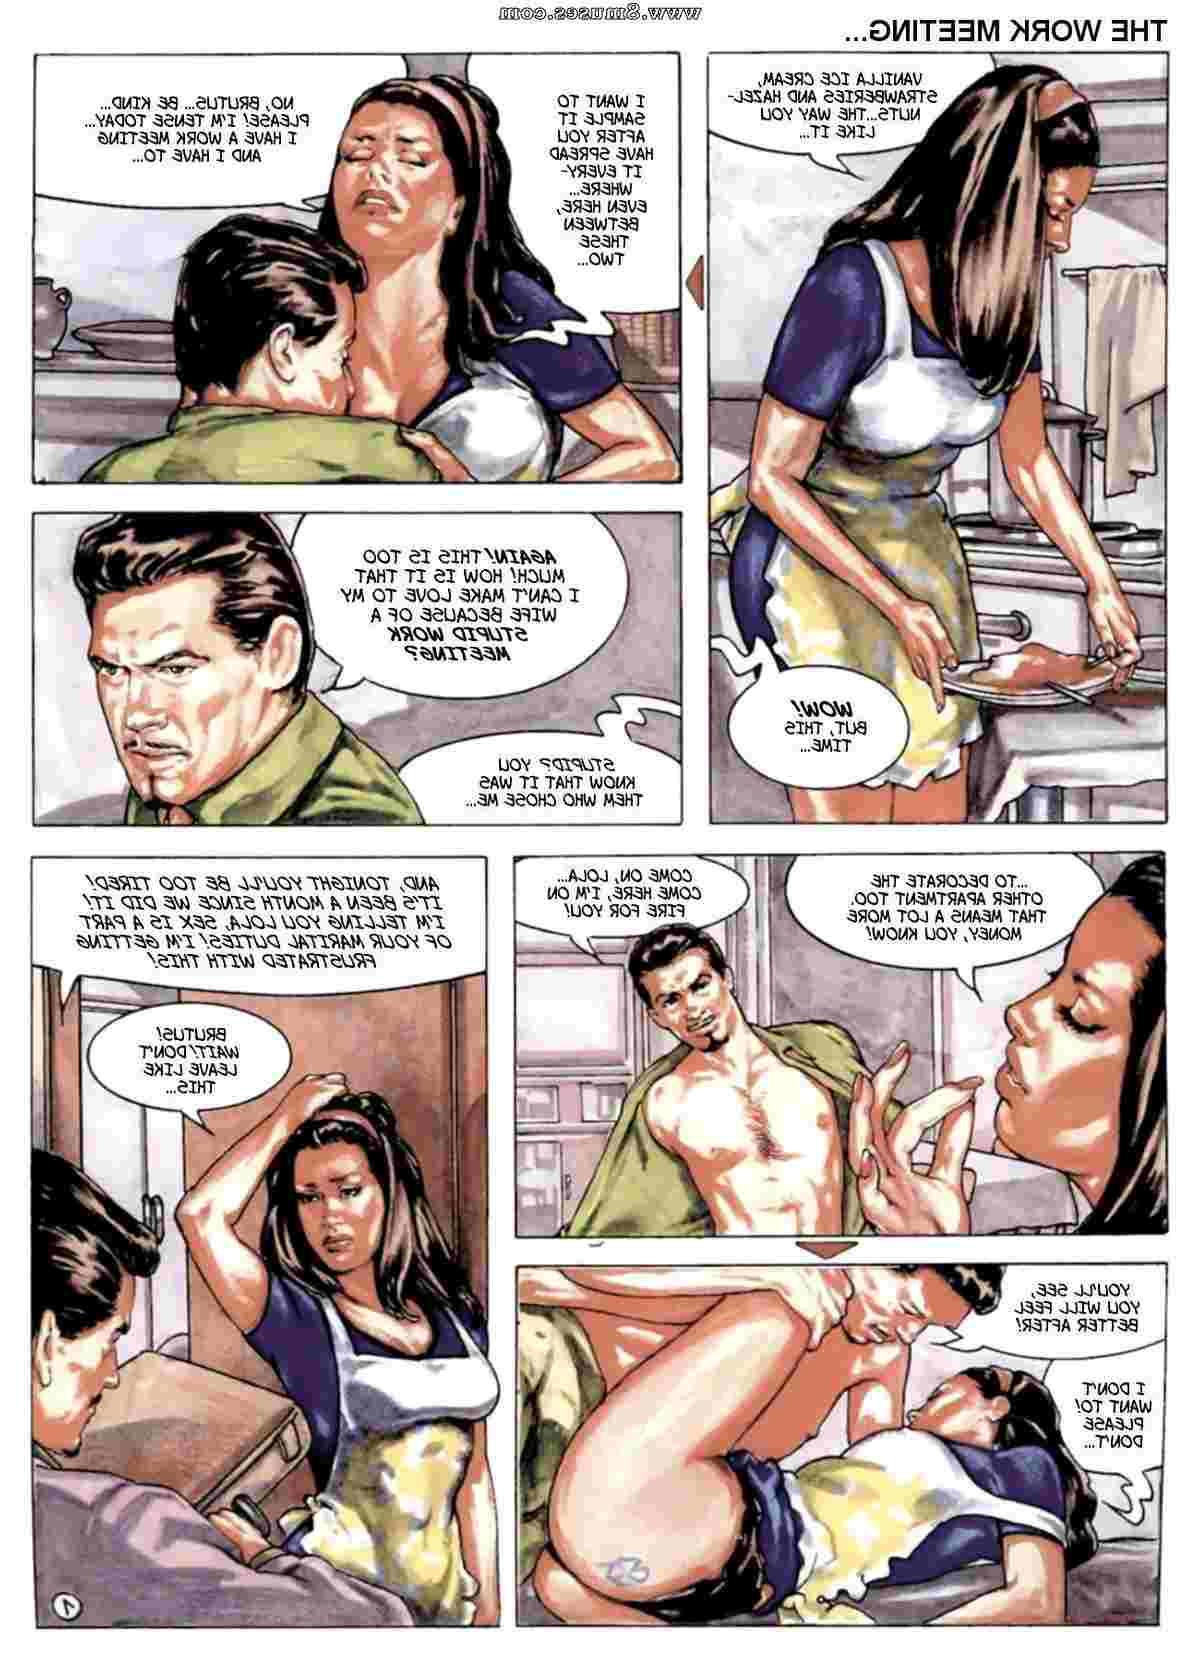 Selen-Comics/Beloved-Submission Beloved_Submission__8muses_-_Sex_and_Porn_Comics_12.jpg